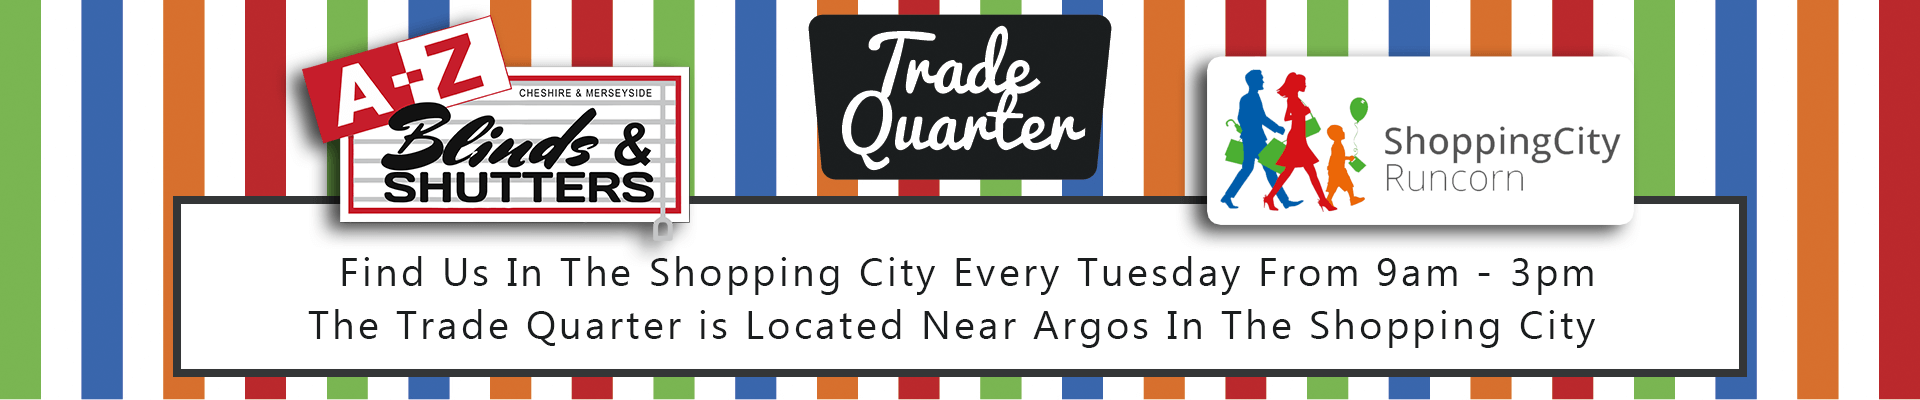 Trade Quarter A-Z Blinds Shopping City